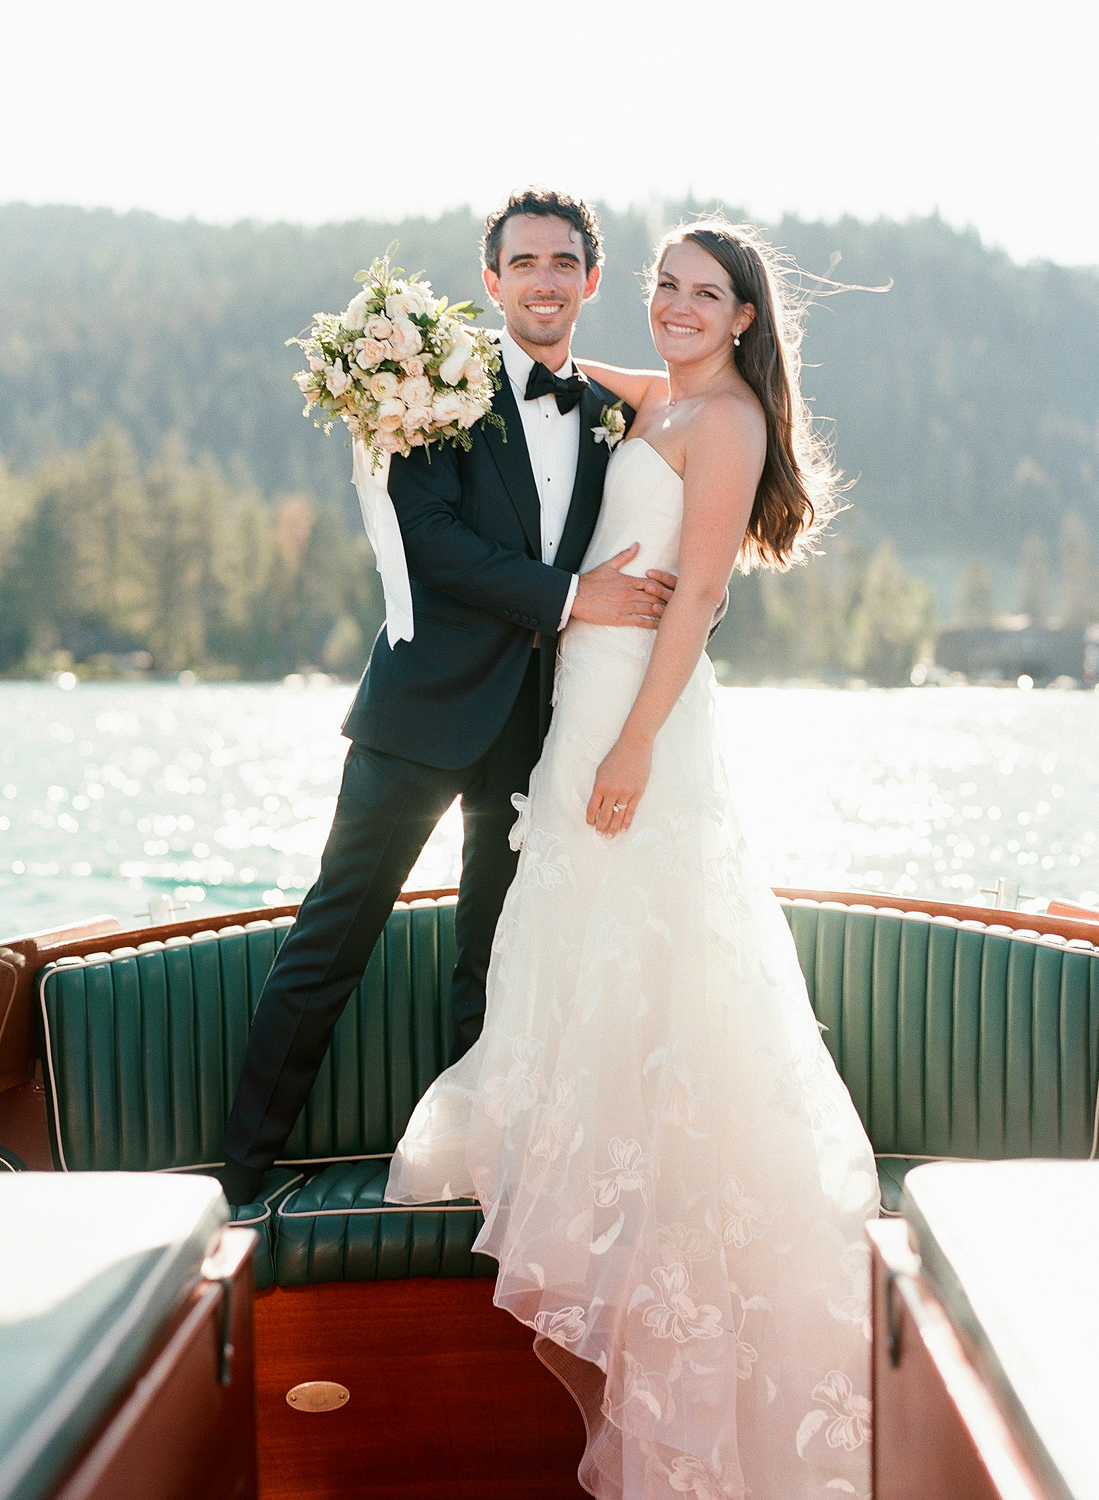 Natalie and Grant wedding bride and groom standing on boat